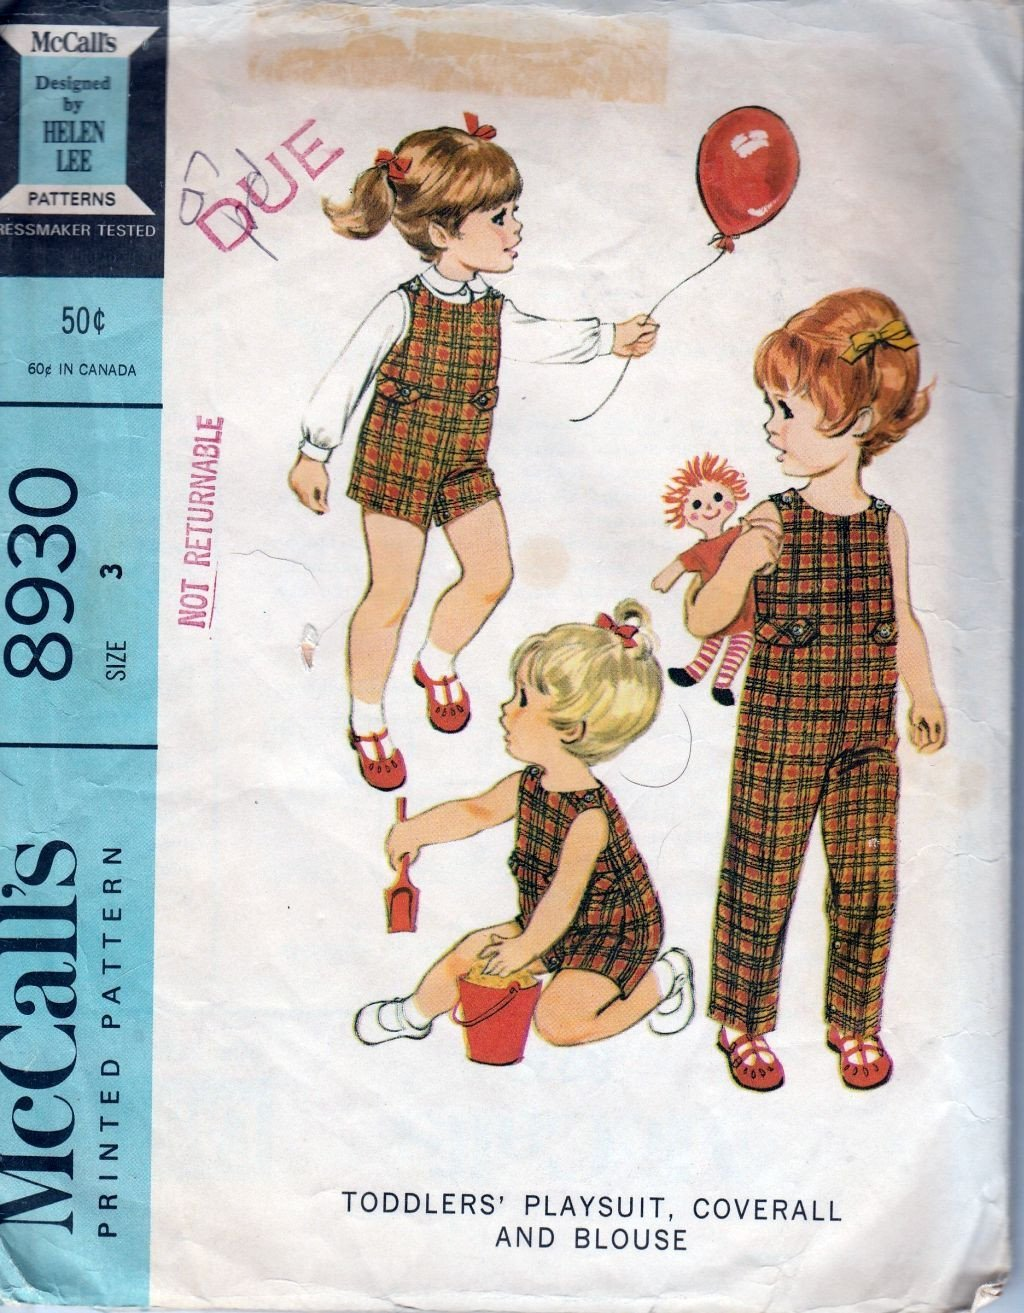 McCalls 8390 Vintage 60's Sewing Pattern Toddler Playsuit Overalls Jumpsuit Romper - VintageStitching - Vintage Sewing Patterns